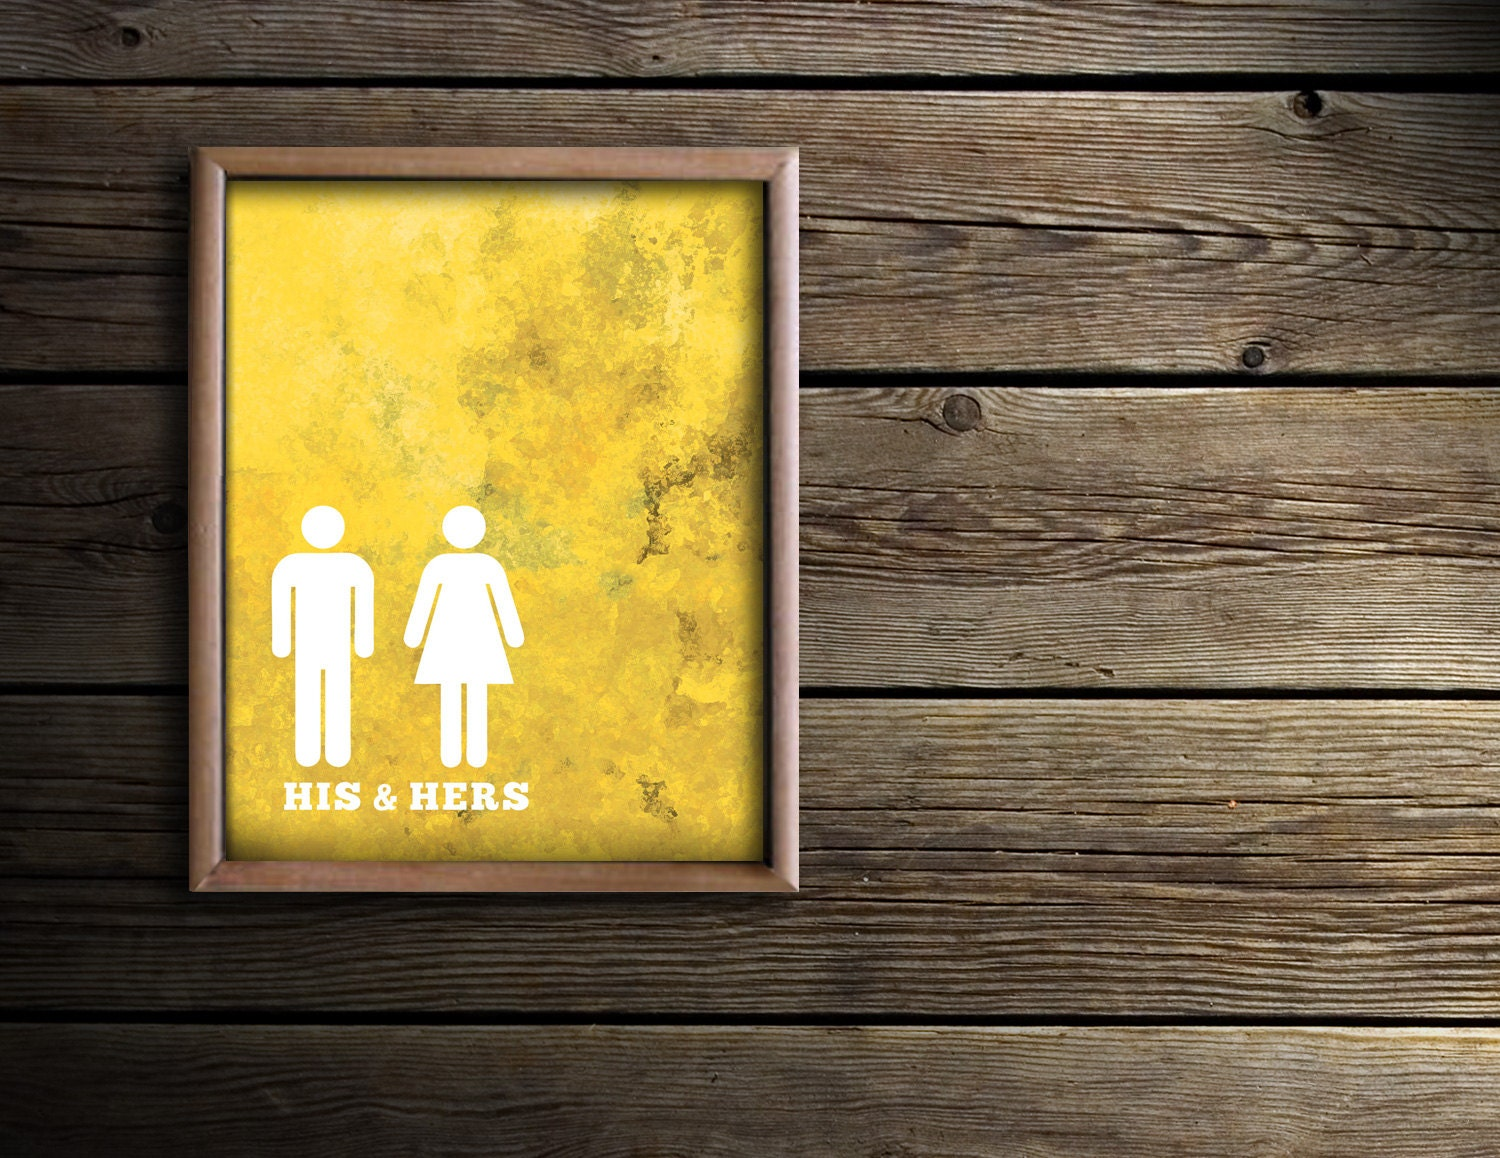 Bathroom Wall Art Bath Prints Yellow Bathroom Art His & | Etsy